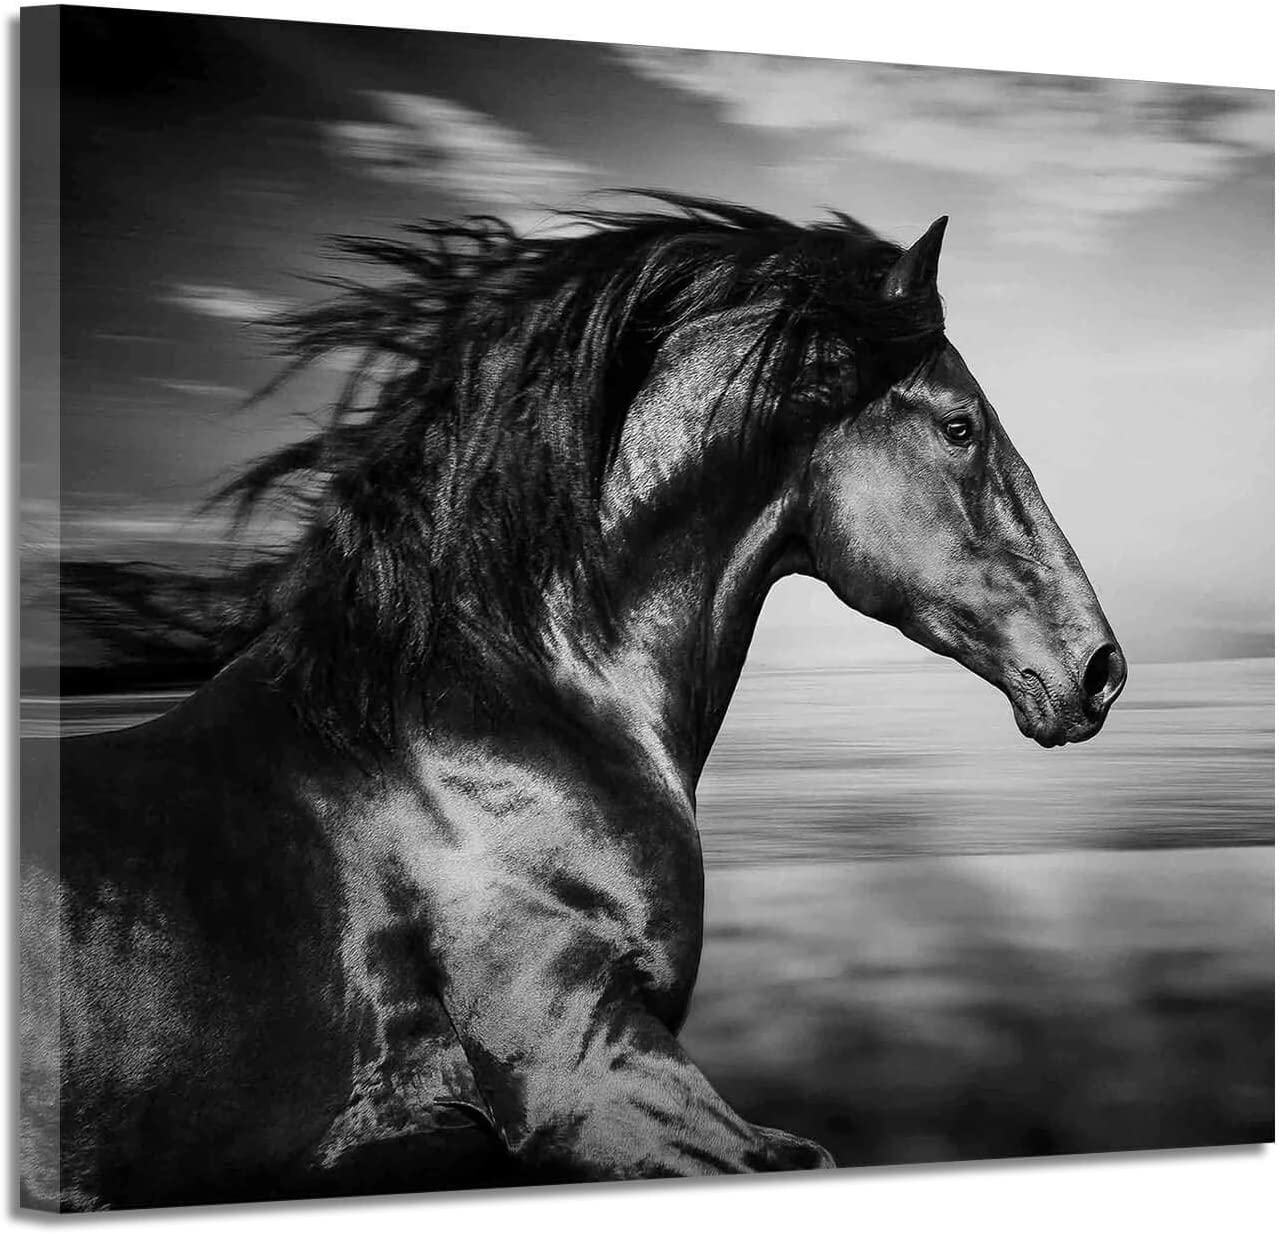 Black Horse Canvas Picture Prints: Wild Animal Painting Art Artwork on Canvas for Office (24